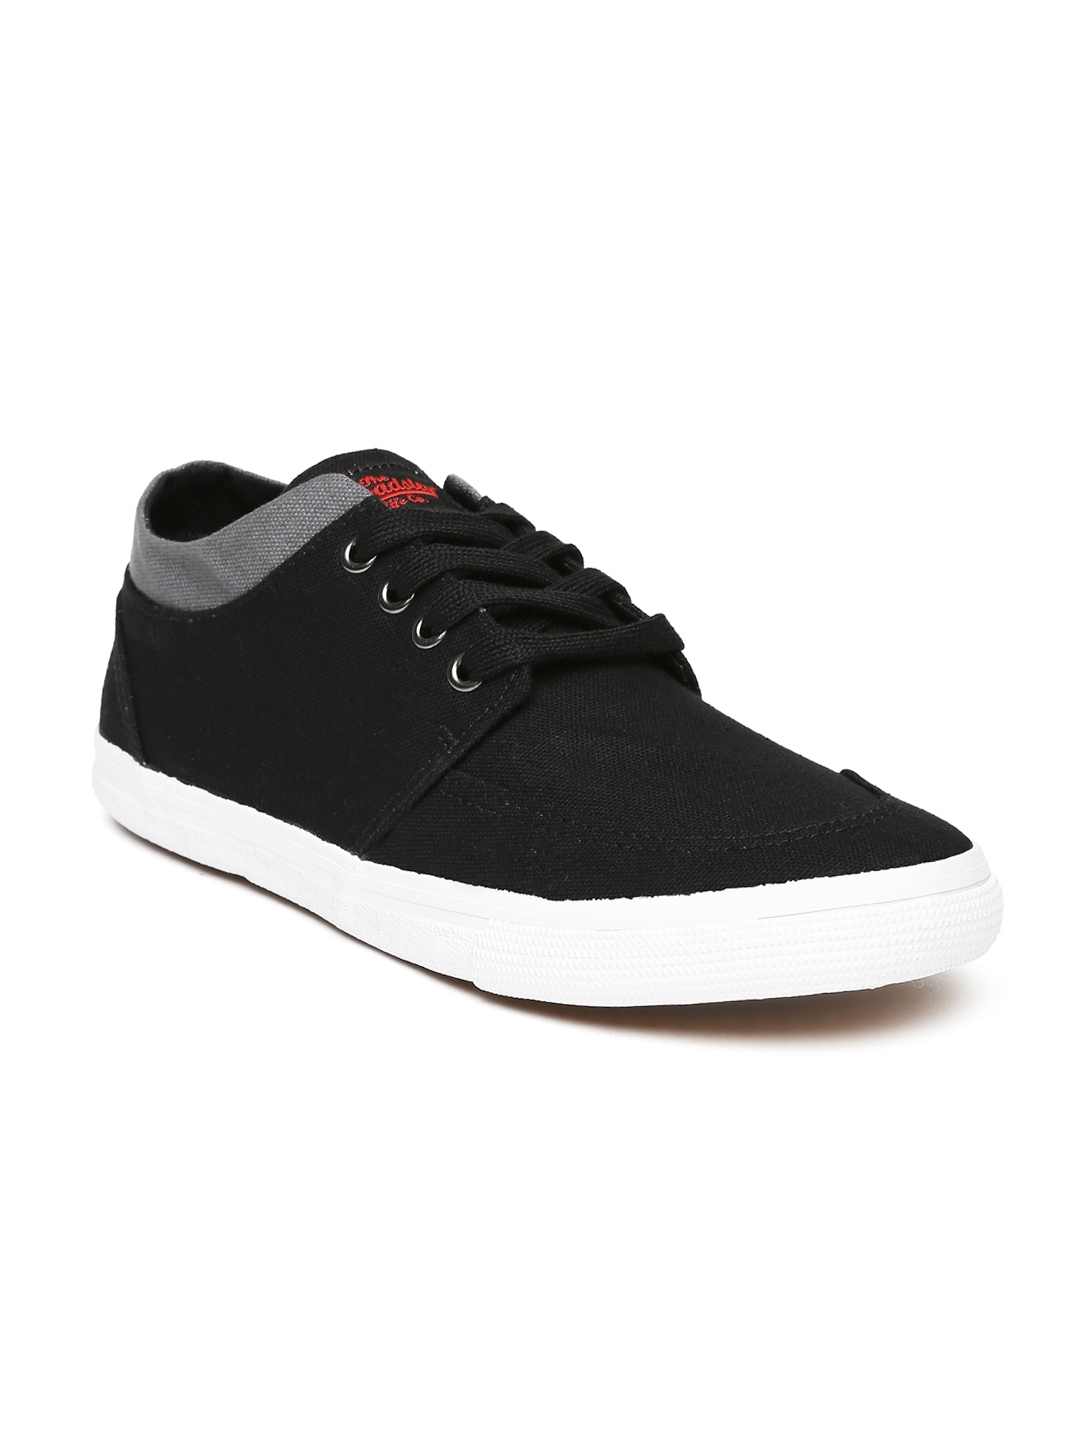 myntra roadster black casual shoes 851542 buy myntra